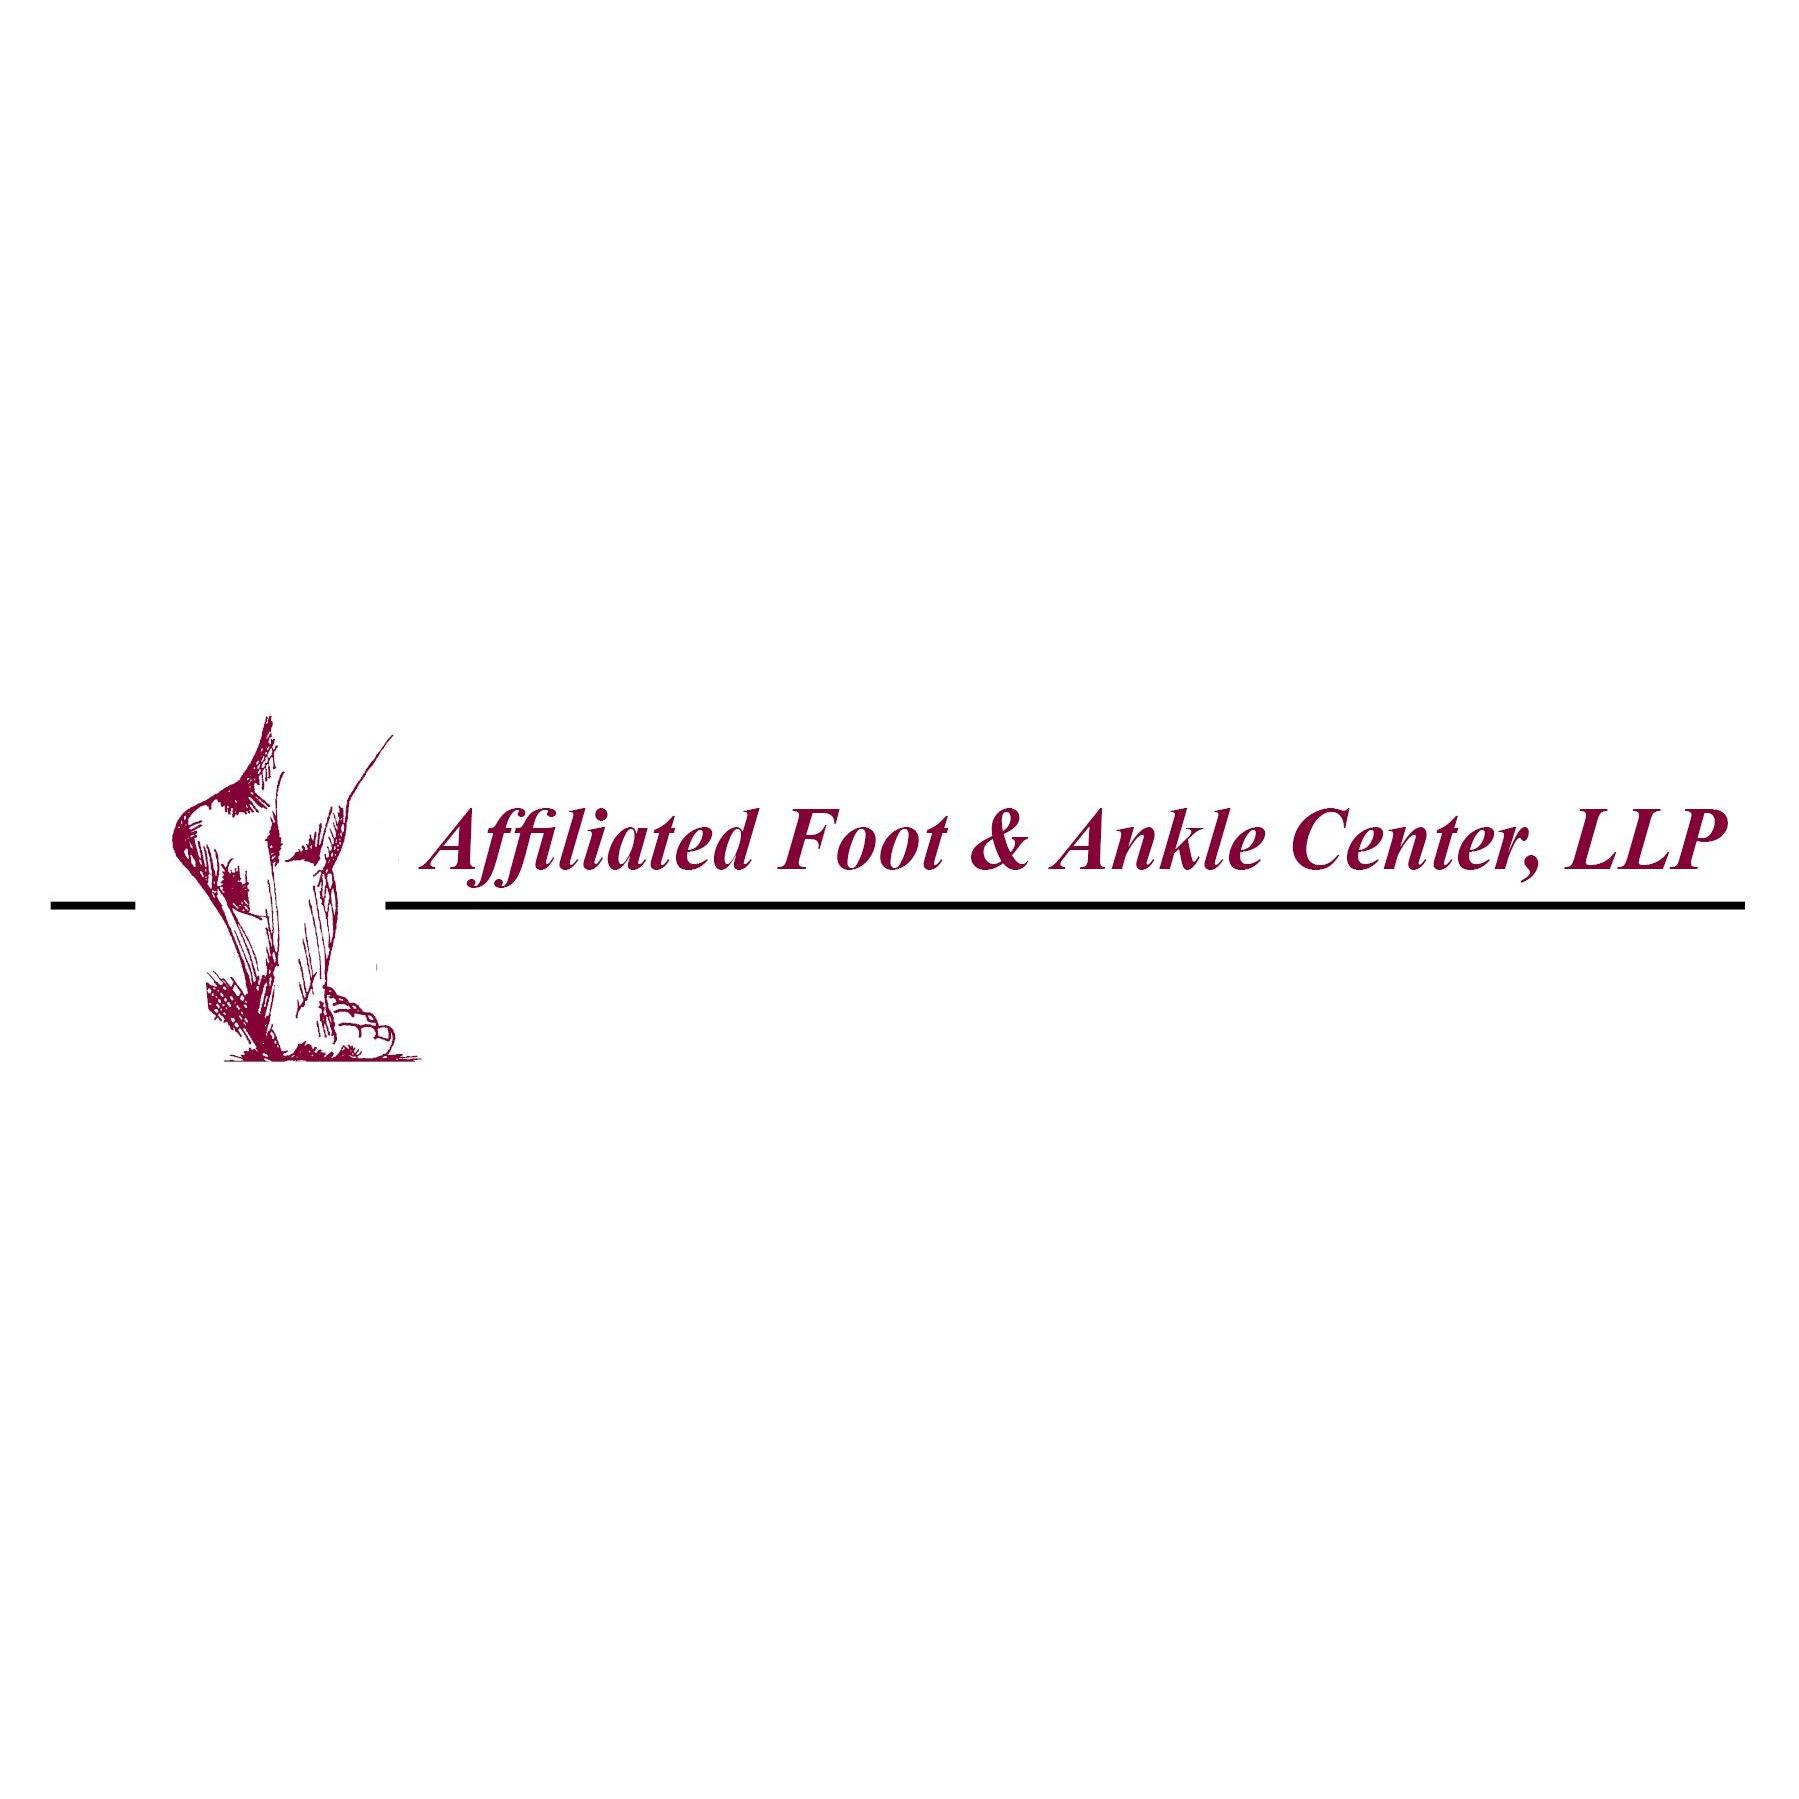 Affiliated Foot & Ankle Center, LLP